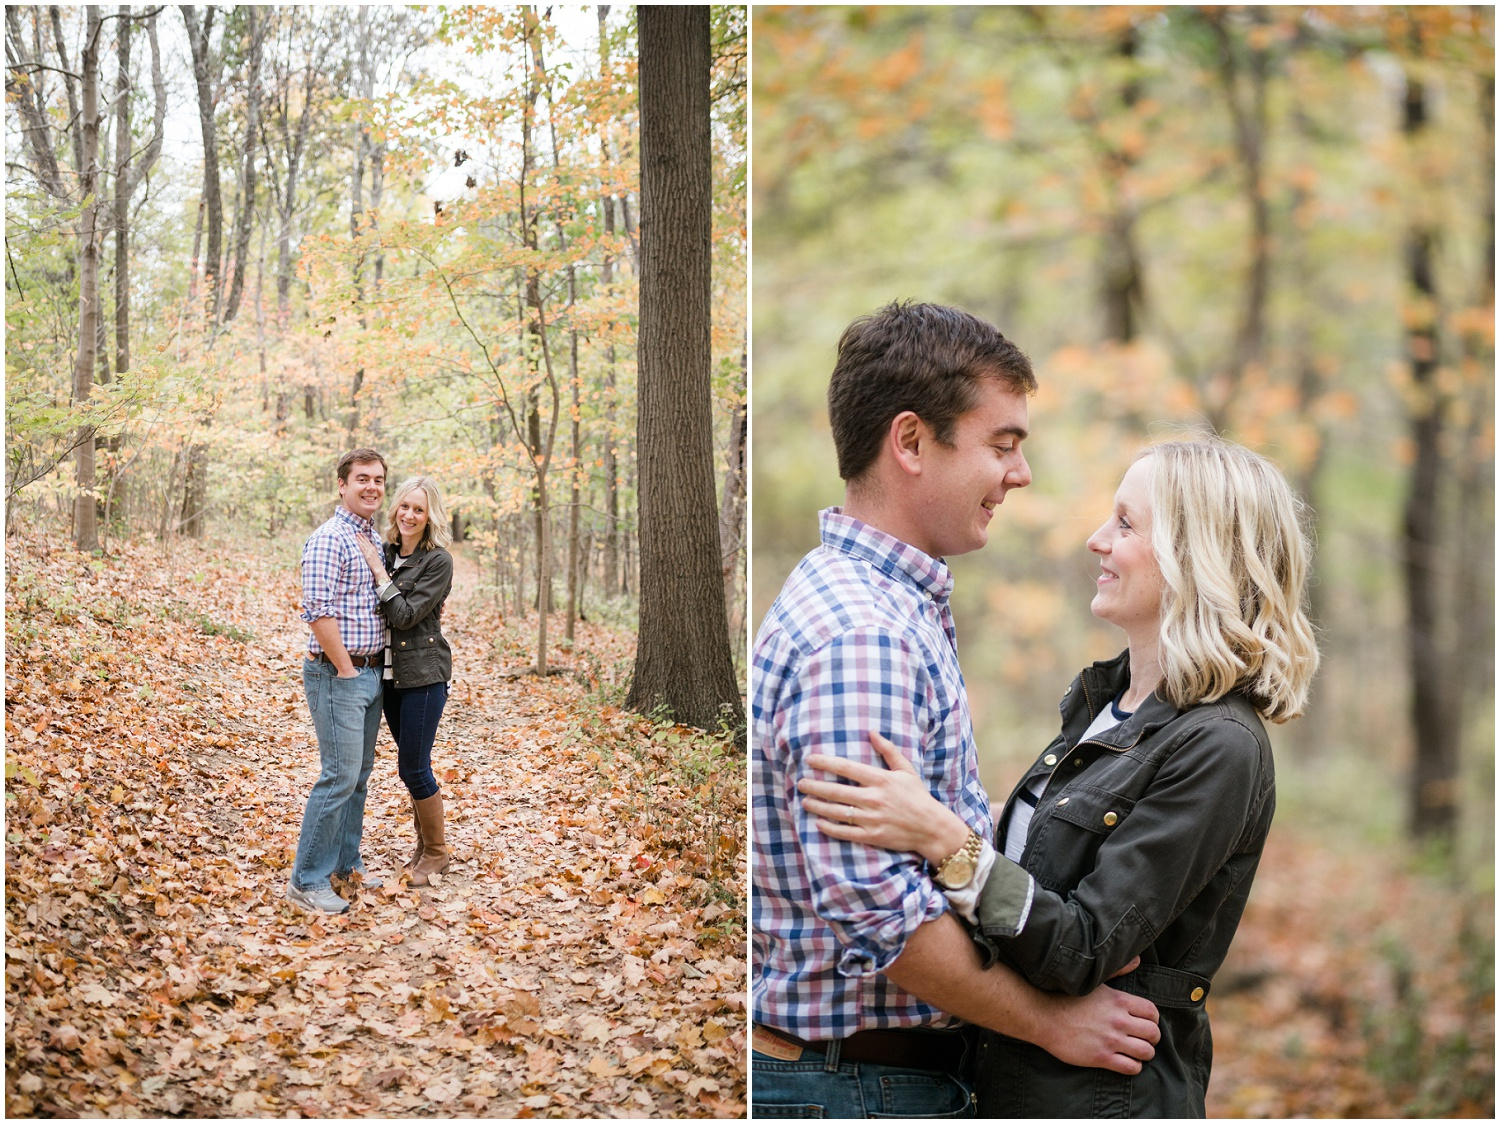 leah-reese-cherokee-park-engagement-session_0259.jpg